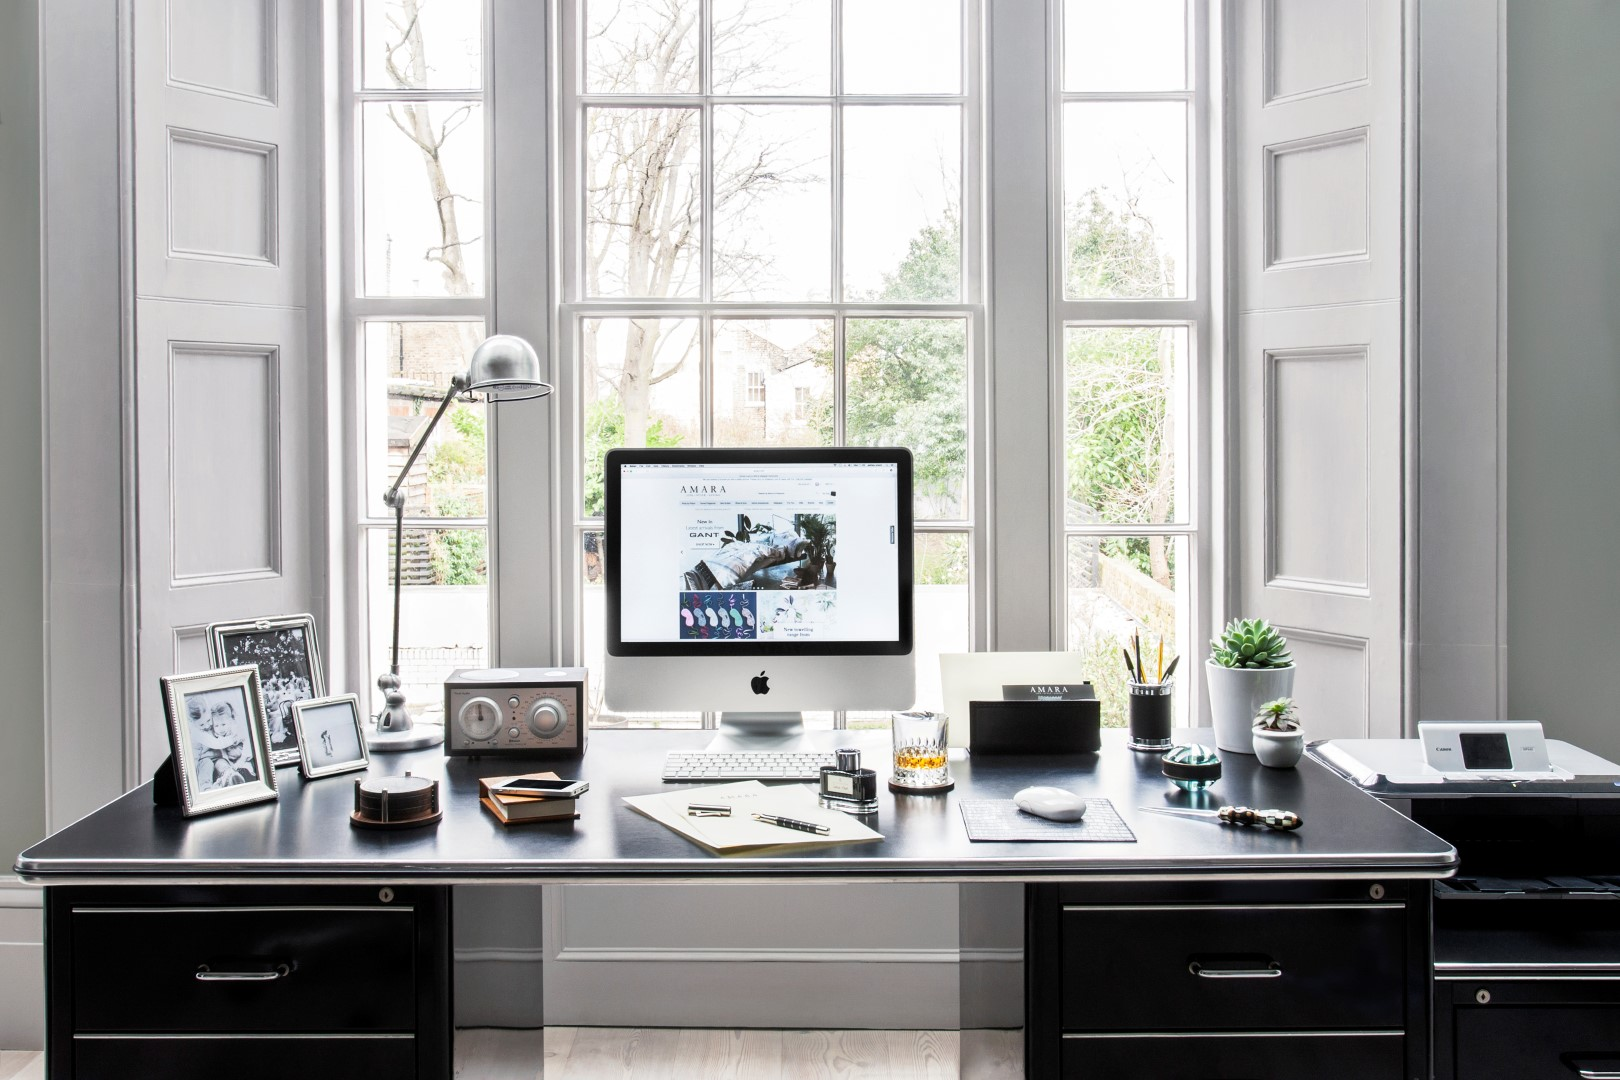 Home office designer Small Expert Advice Home Office Design Tips Amara Expert Advice Home Office Design Tips From Interior Designers